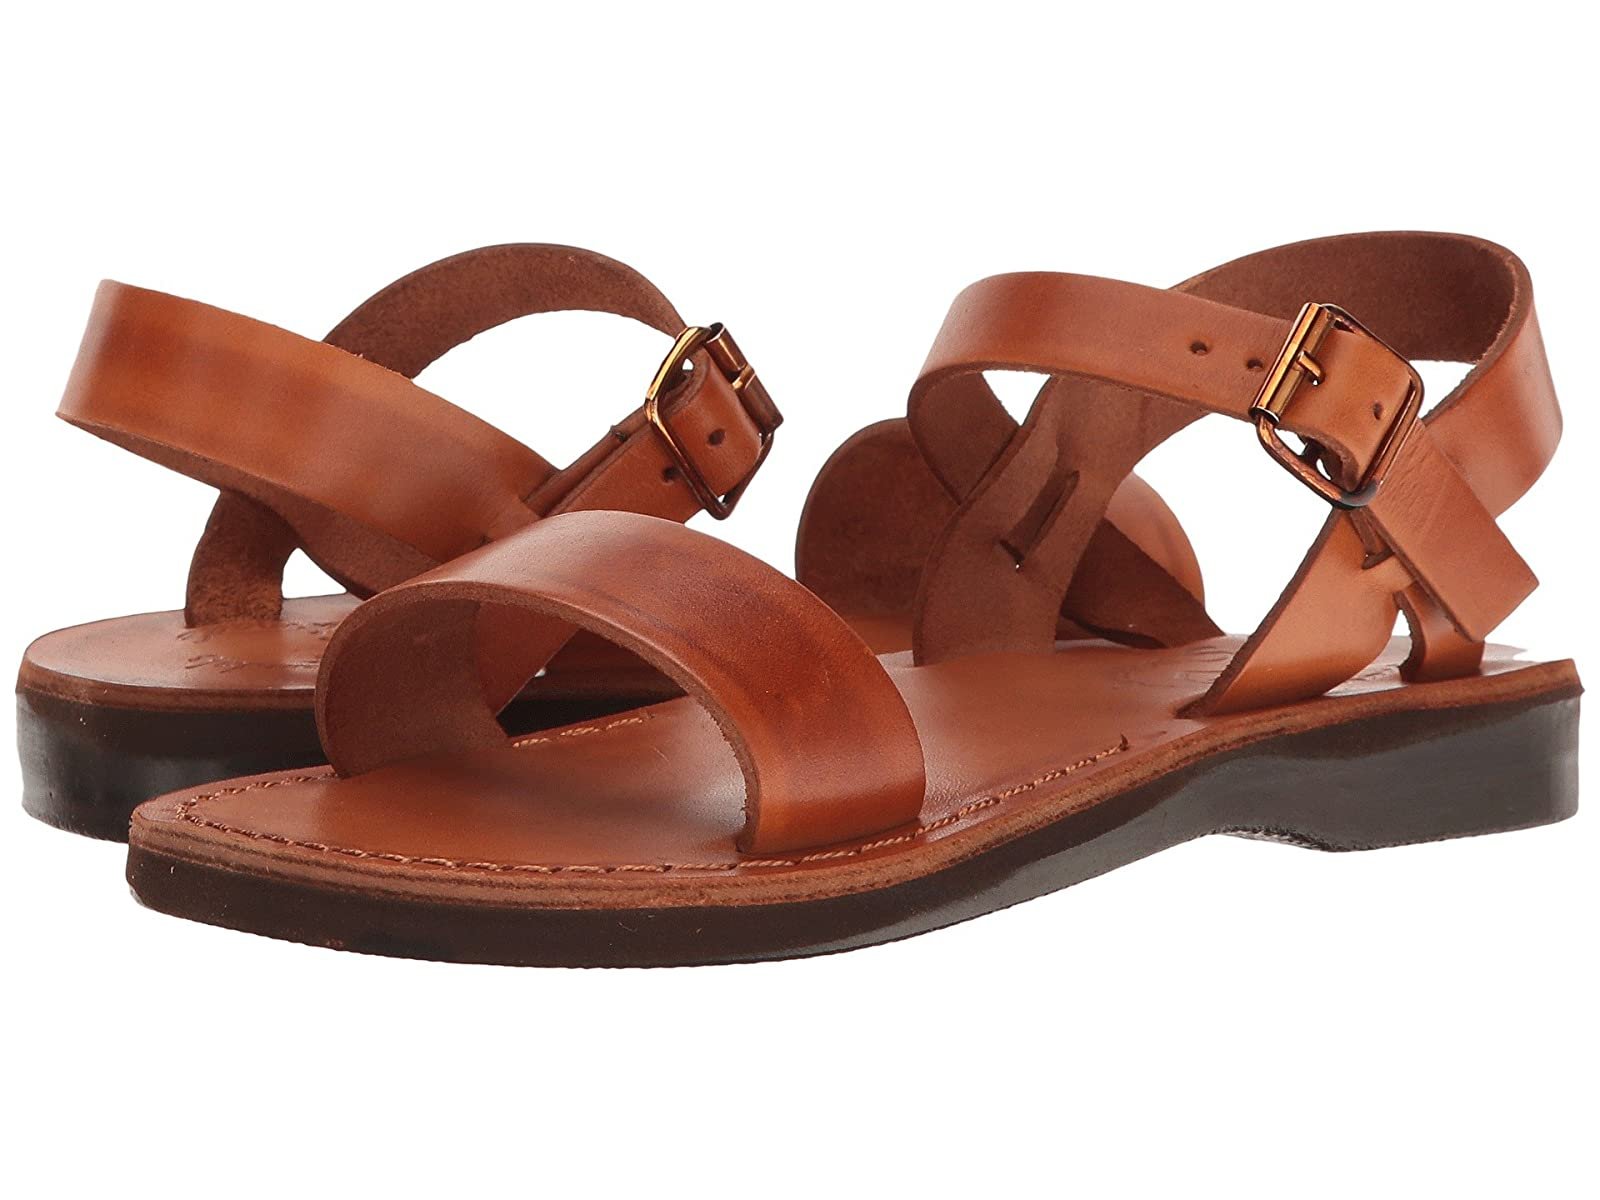 Jerusalem Sandals Naomi - WomensAtmospheric grades have affordable shoes